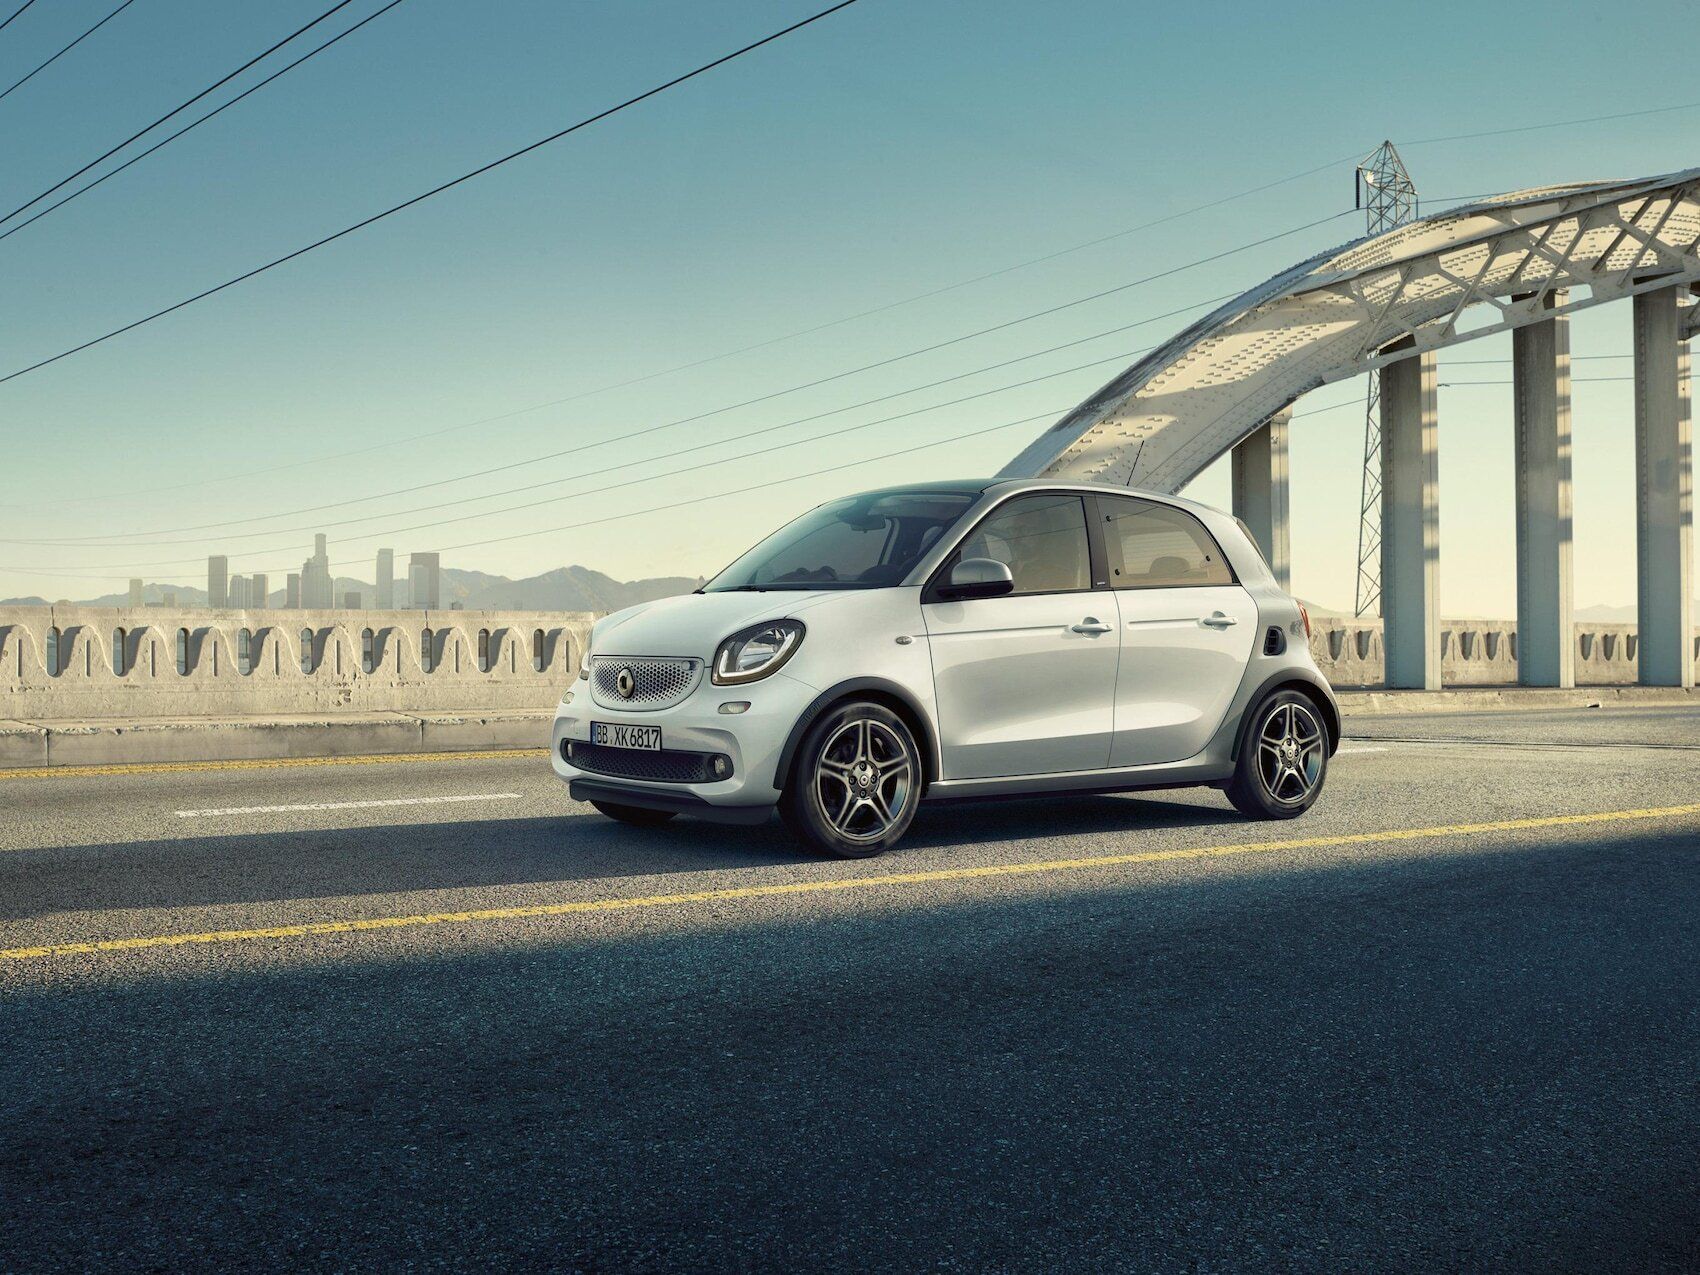 smart-eq-forfour.jpg